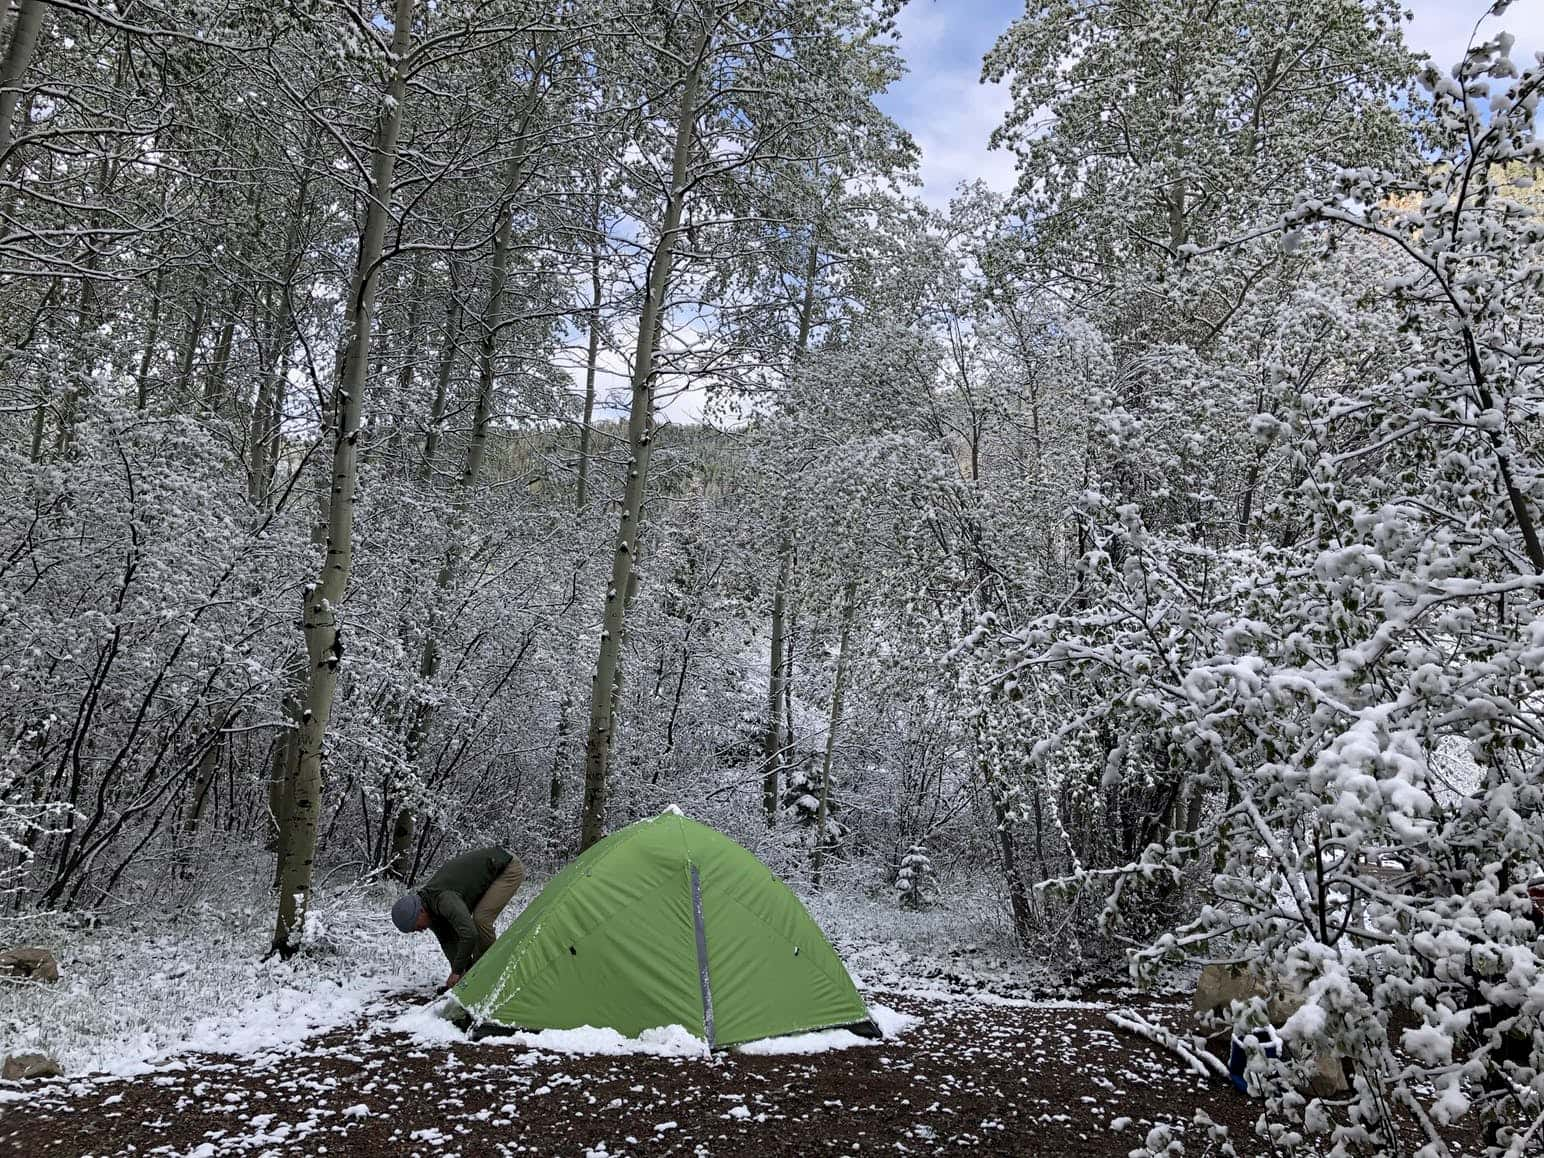 Snow dusted forest surrounds man setting up green tent in the foreground.